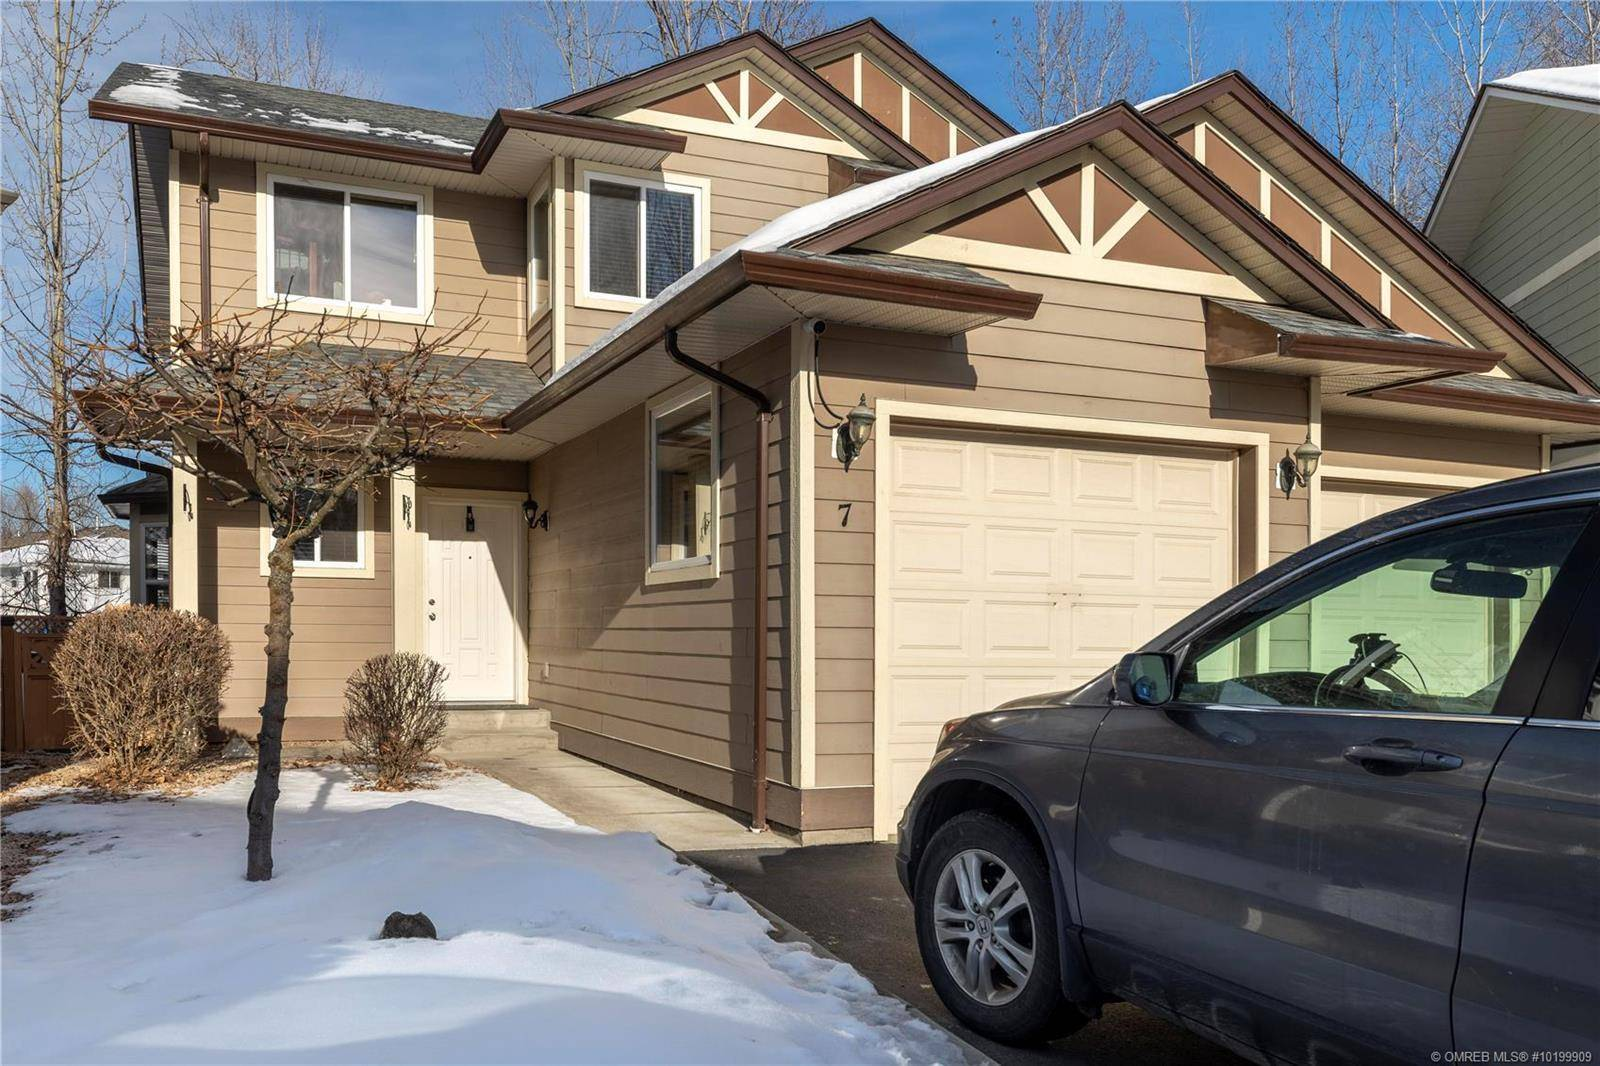 Townhouse for sale at 5101 19 St Unit 7 Vernon British Columbia - MLS: 10199909